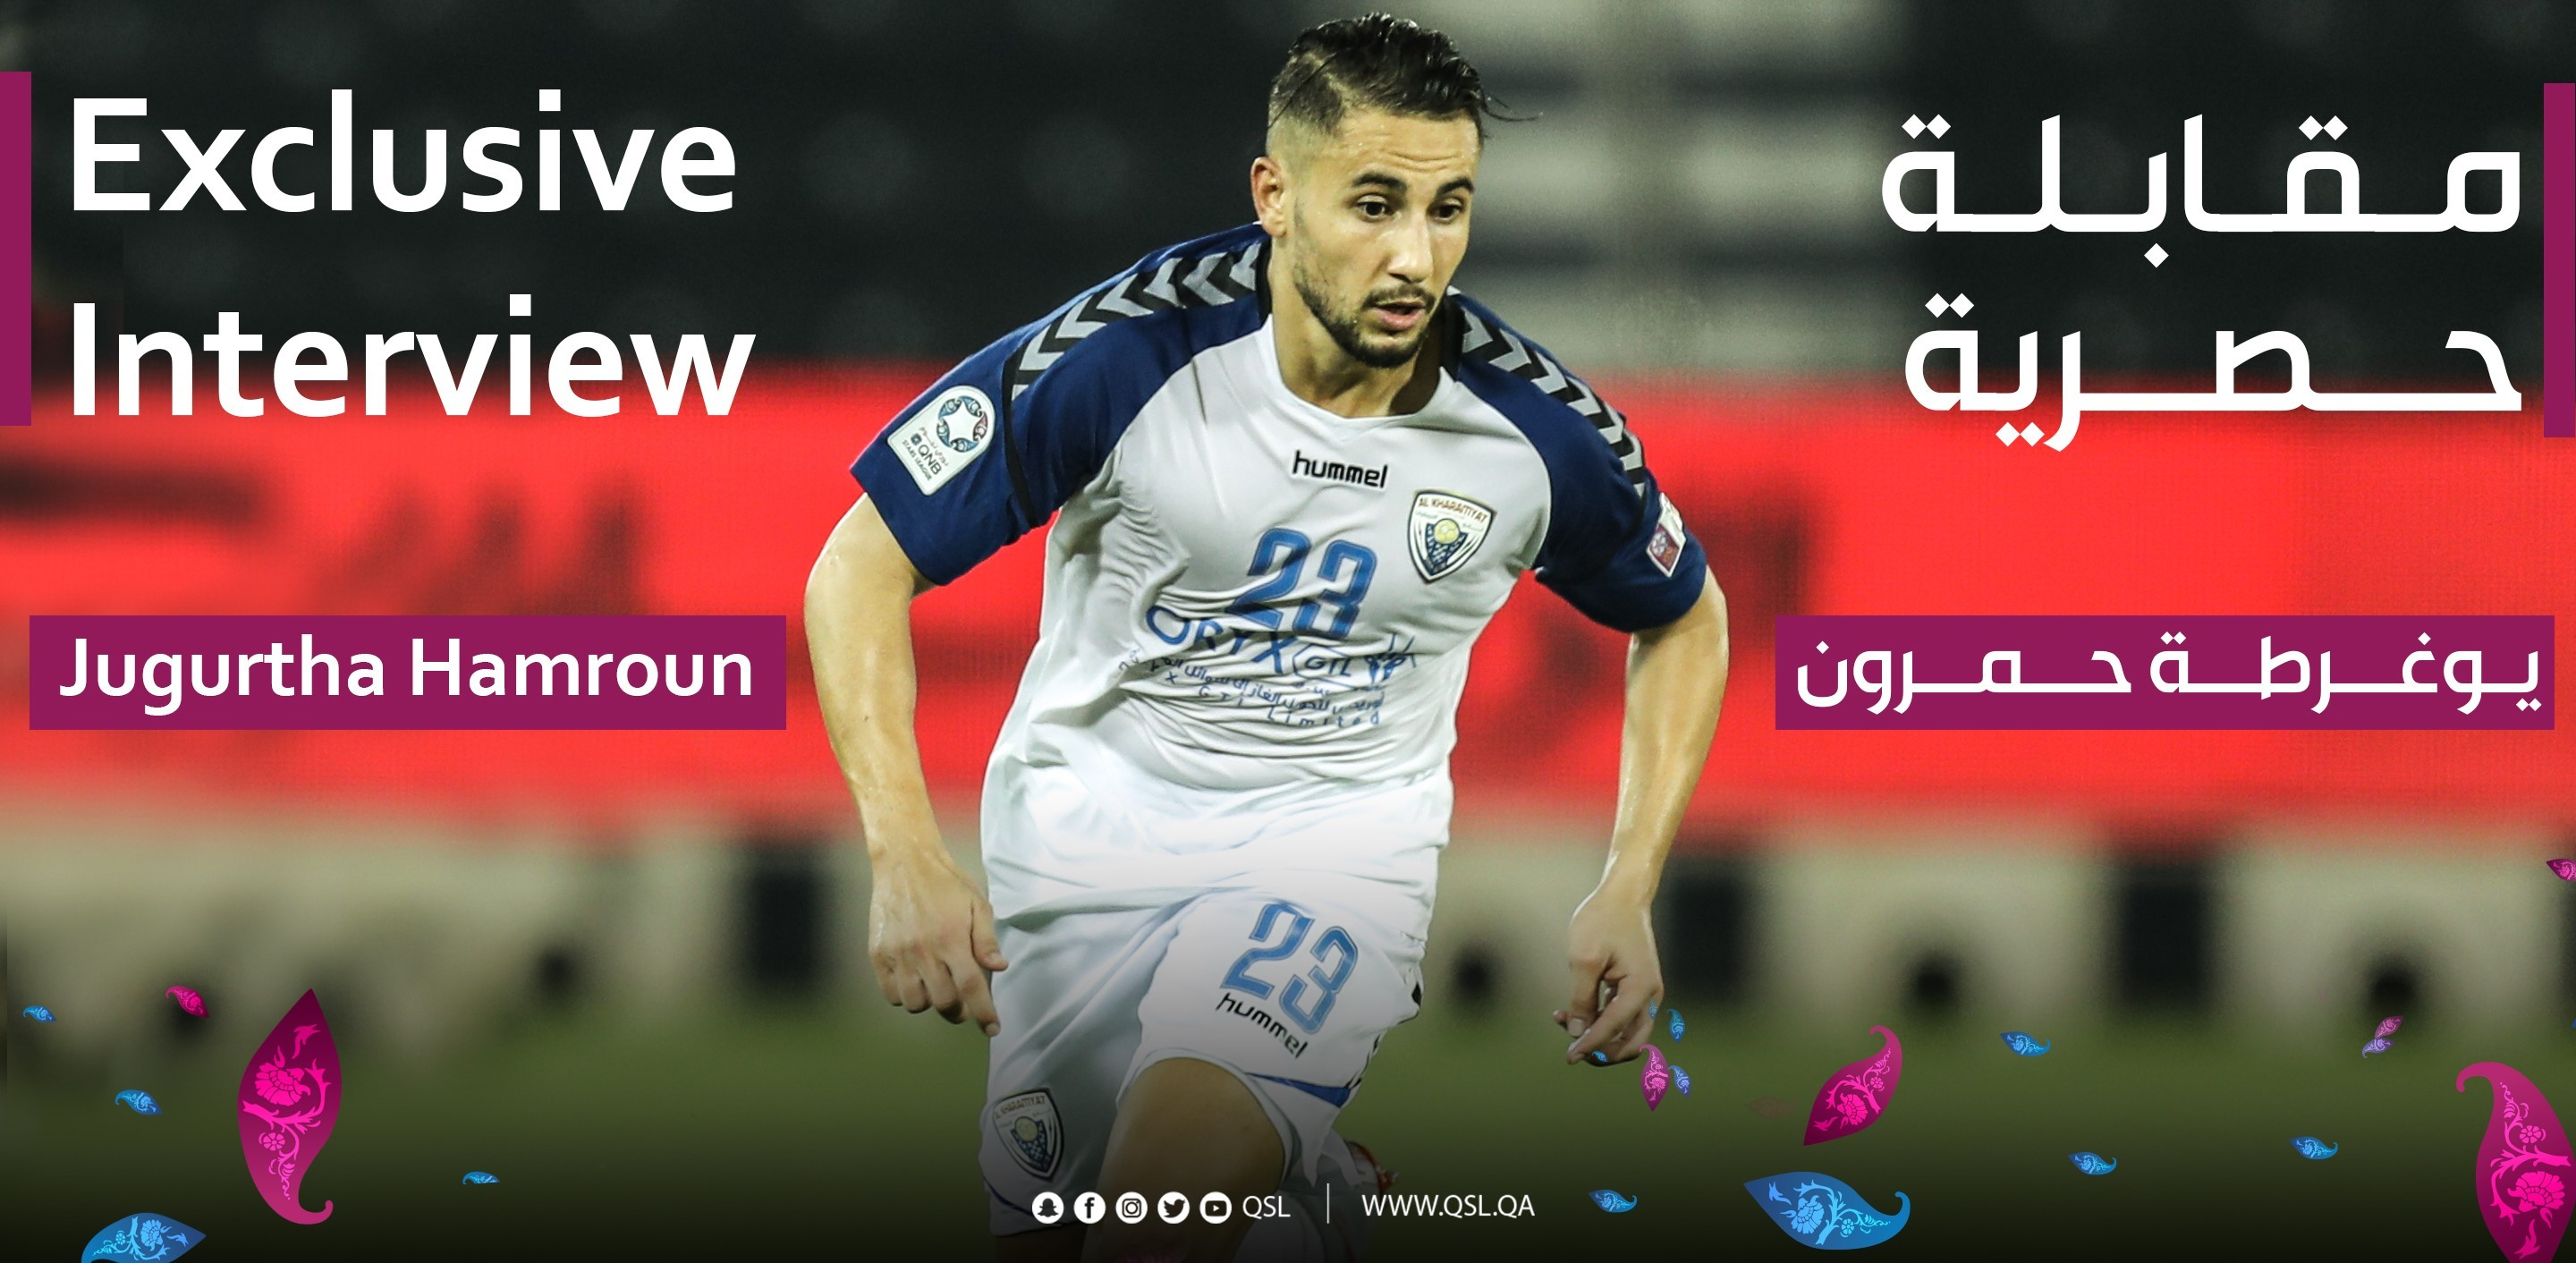 Al Kharatiyat attacking midfielder Jugurtha Hamroun in an Exclusive Interview with QSL Online.